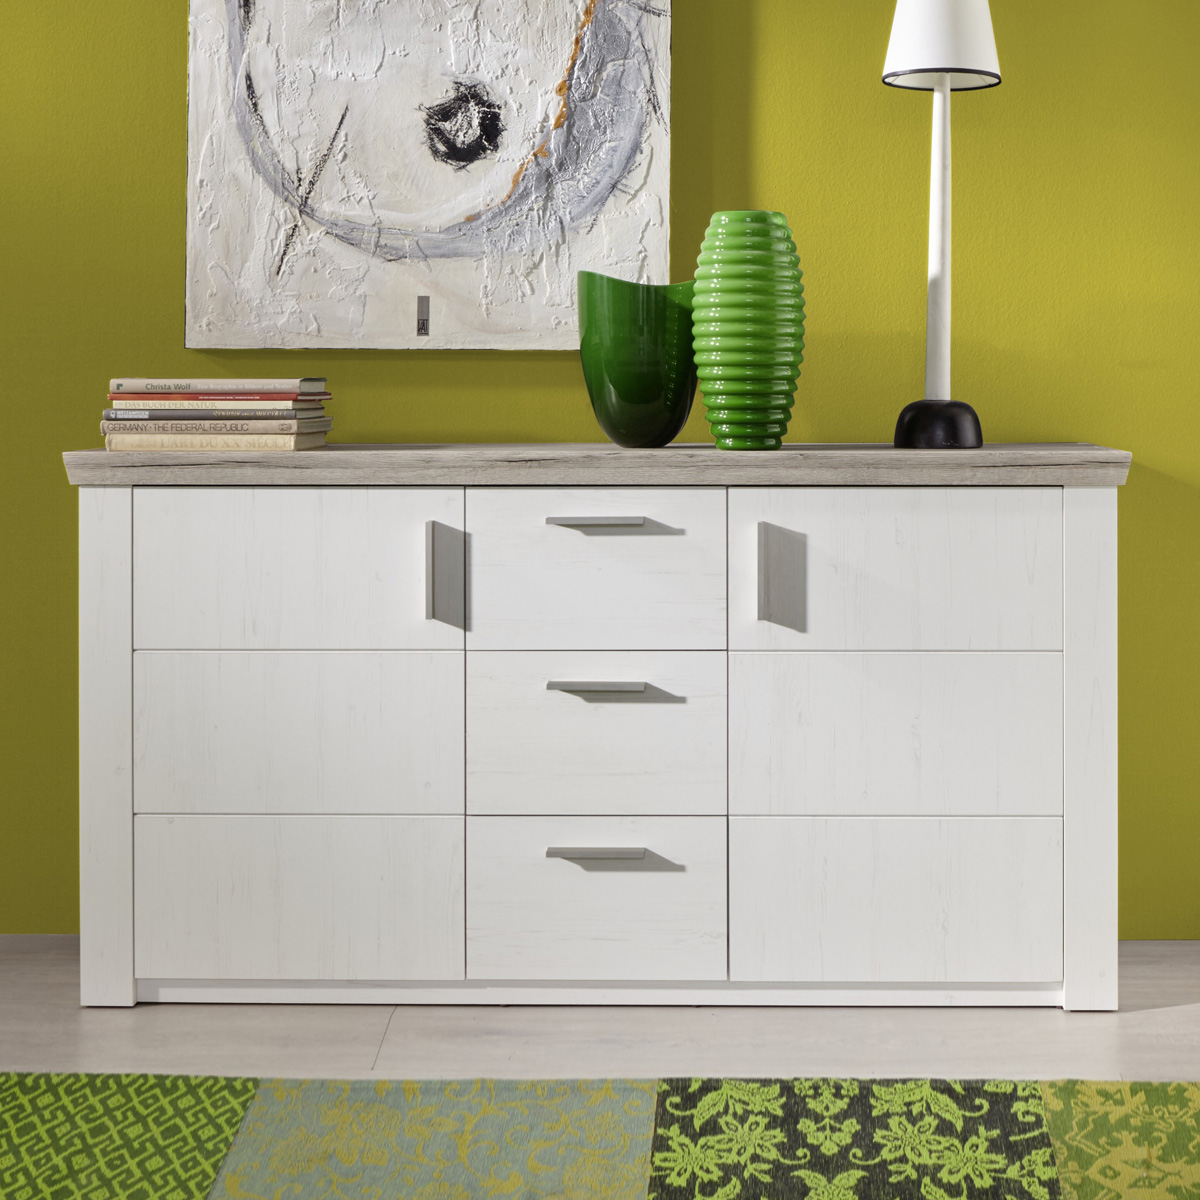 sideboard elia in pinie struktur wei und eiche san remo sand kommode wohnzimmer ebay. Black Bedroom Furniture Sets. Home Design Ideas